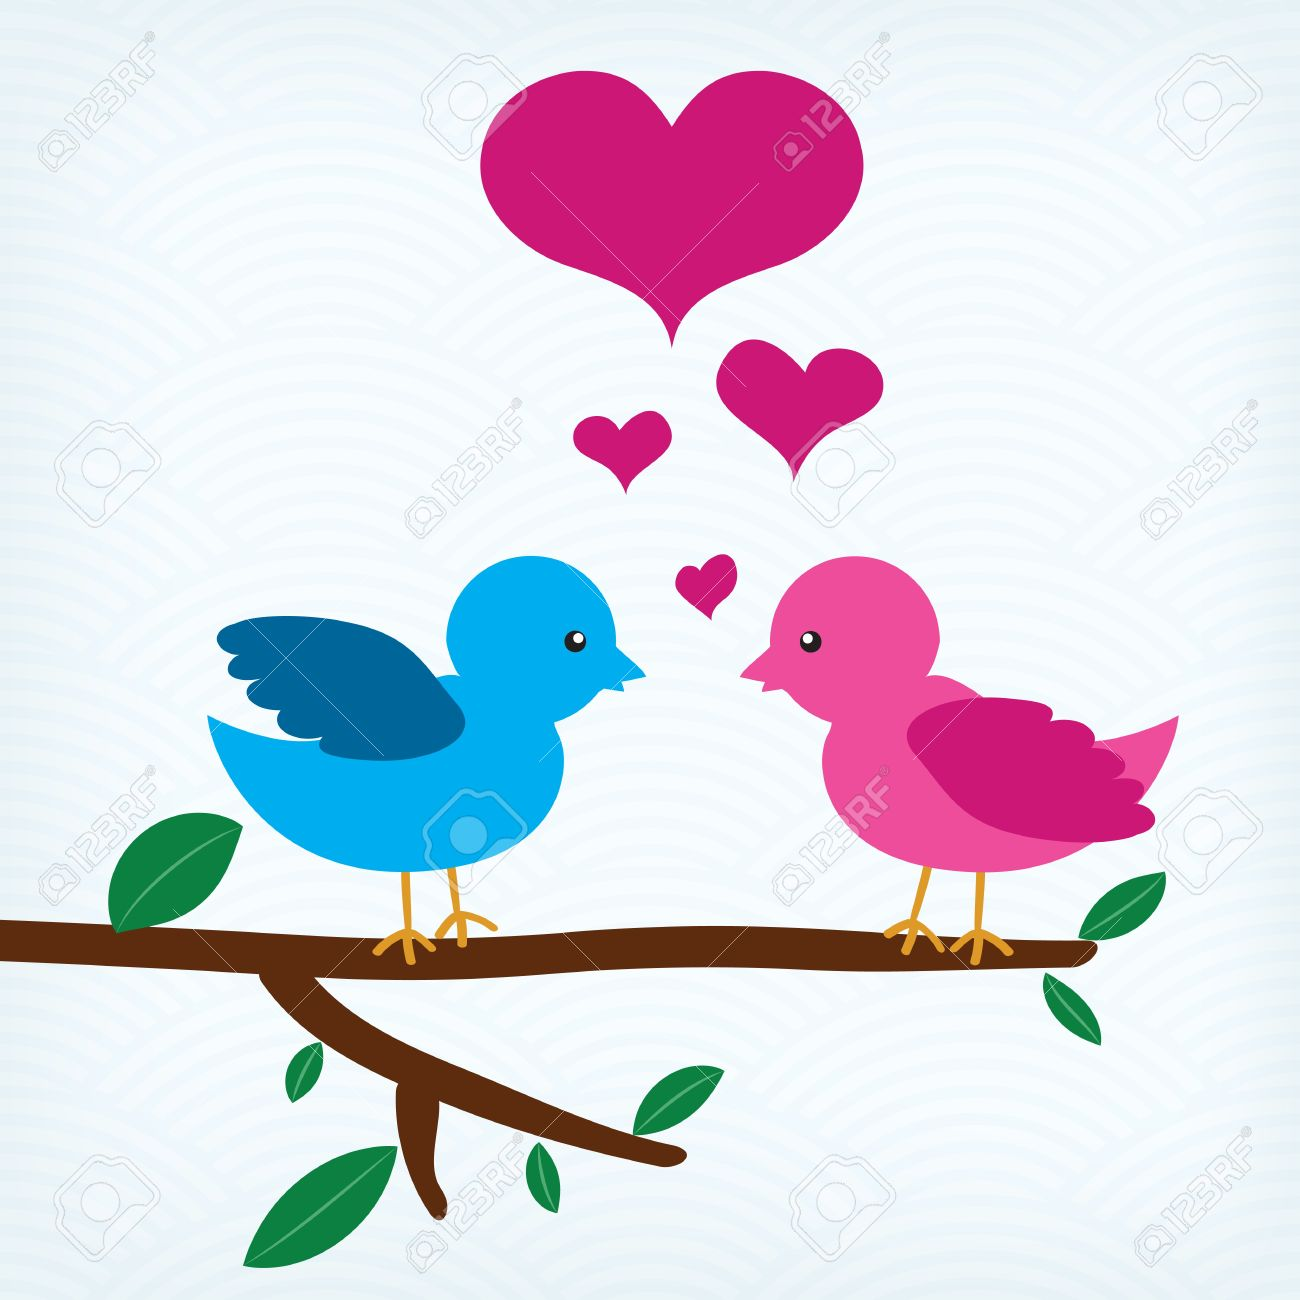 Pair Of Birds In Love Sitting On A Tree Branch Royalty Free.